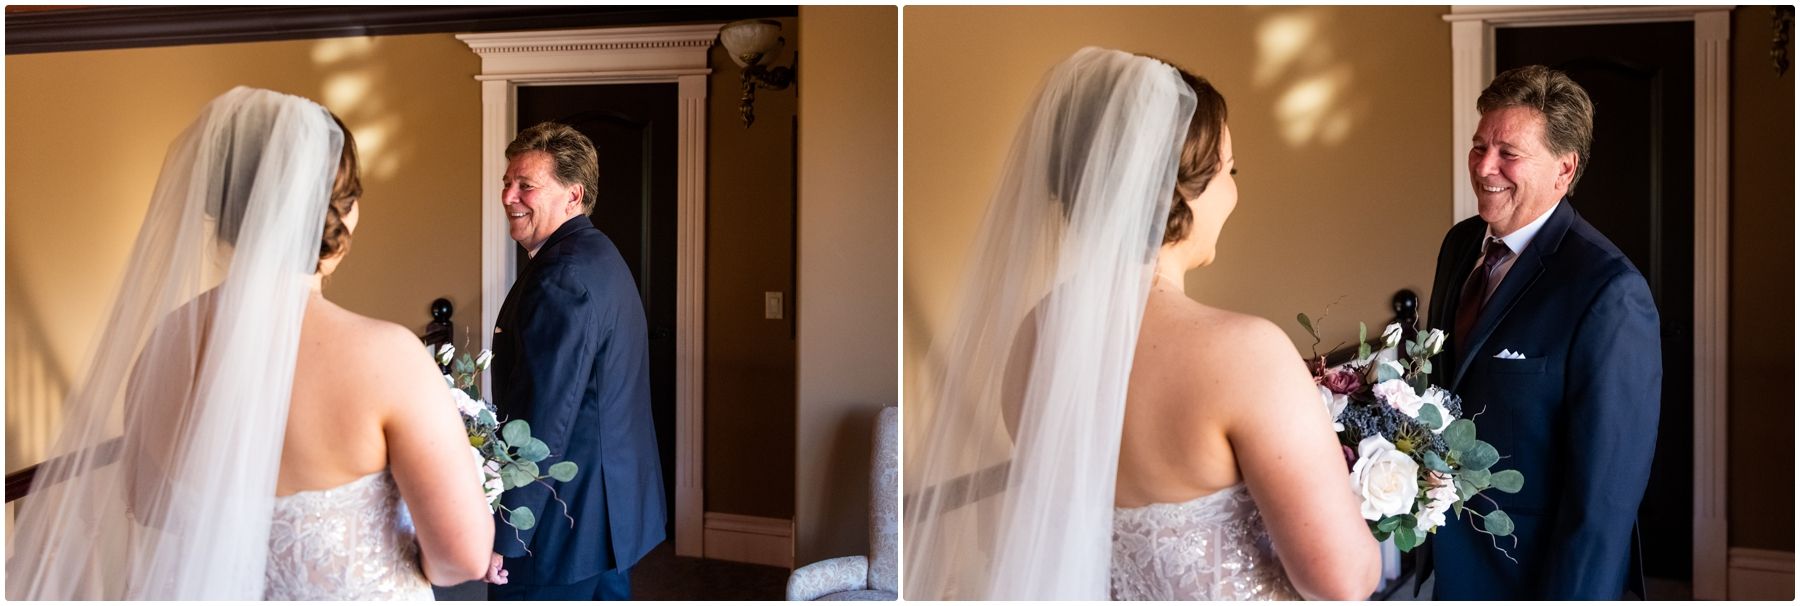 Calgary Intimate Wedding Photographers